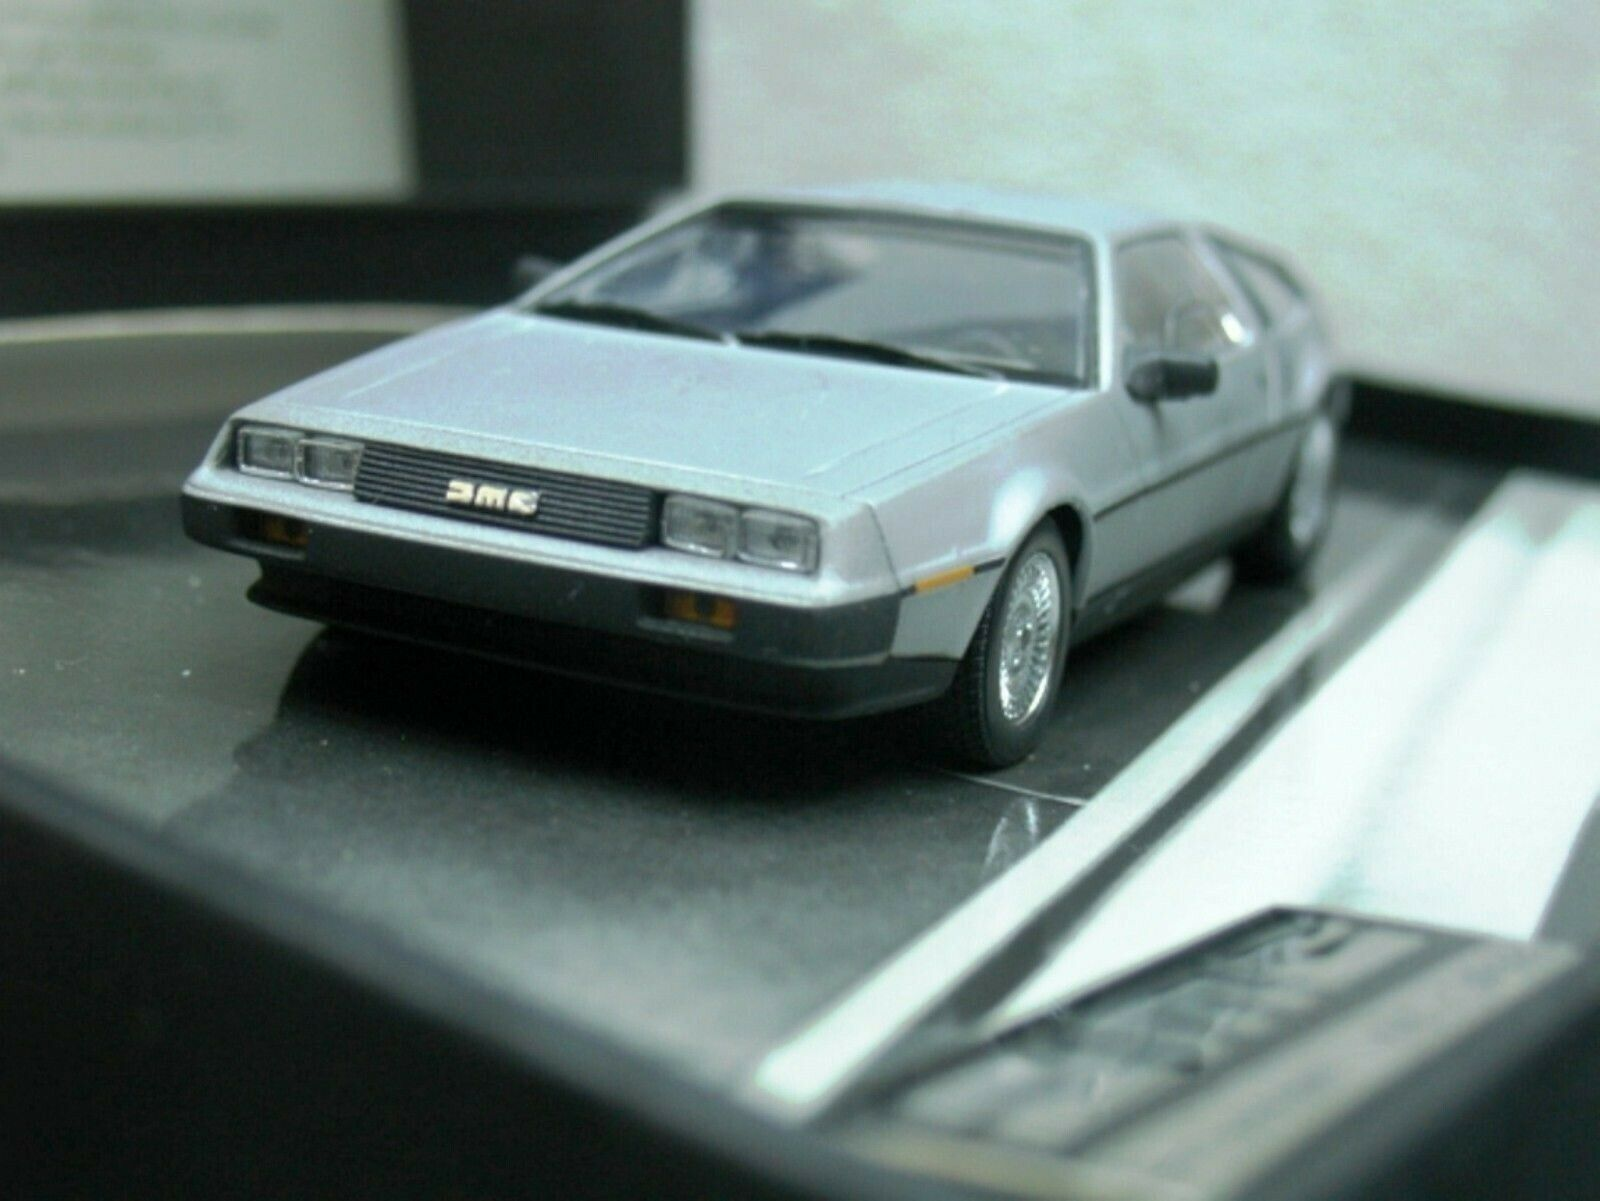 WOW EXTREMELY RARE DeLorean DMC-12 1981 Aluminium Finsh Gift Box 1 43 Minichamps